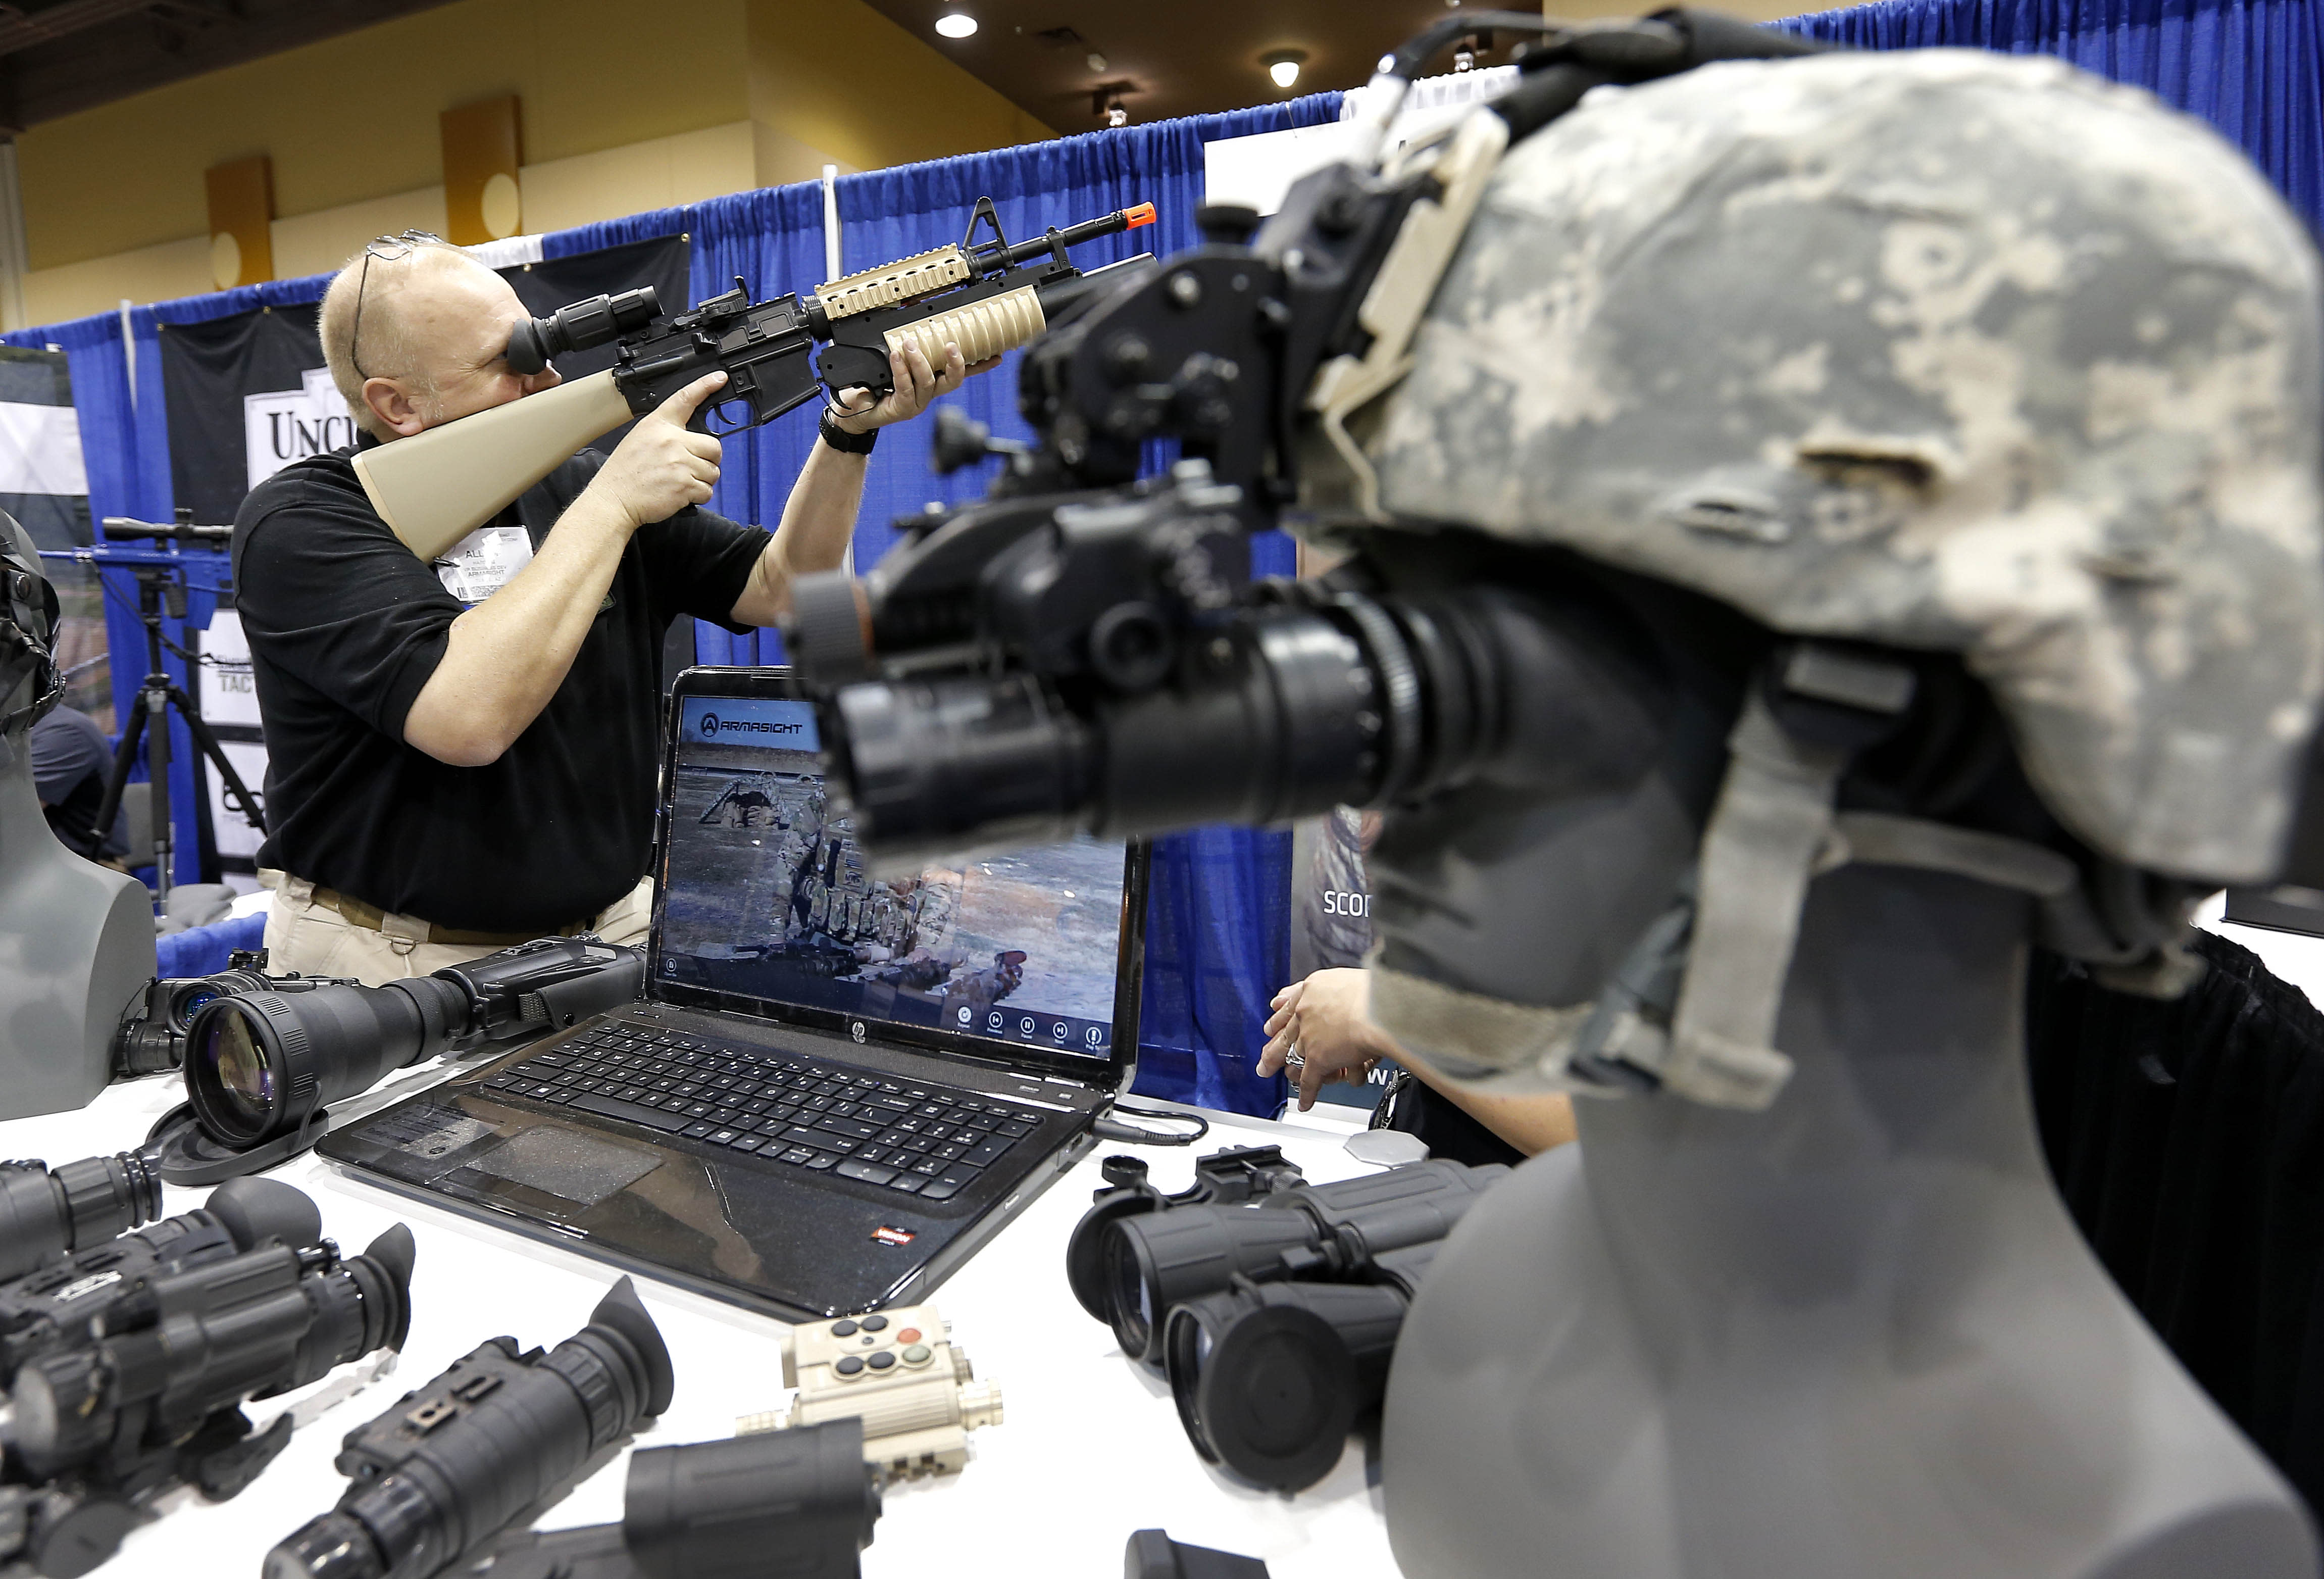 Allen Harding, of Armasight, demonstrates his products Tuesday, March 12, 2013 at the Border Security Expo in Phoenix. More than 180 companies are exhibiting their security products despite automatic spending cuts that are affecting every federal government agency due to the government sequestration. (AP Photo/Matt York)